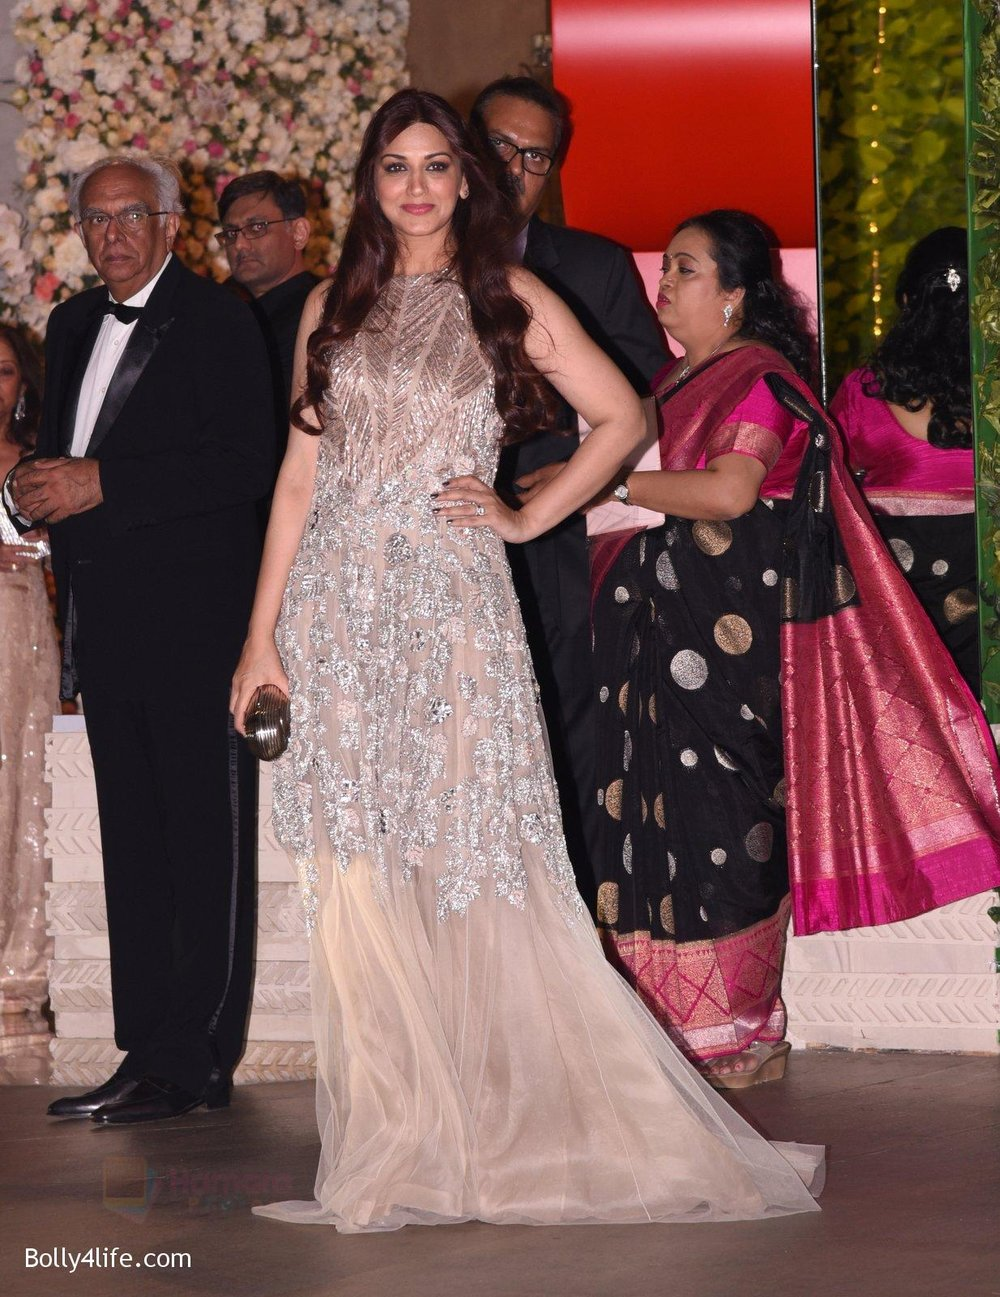 Sonali-Bendre-at-the-Ambanis-wedding-party-of-their-niece-Isheta-Salgaoncar-1.jpg